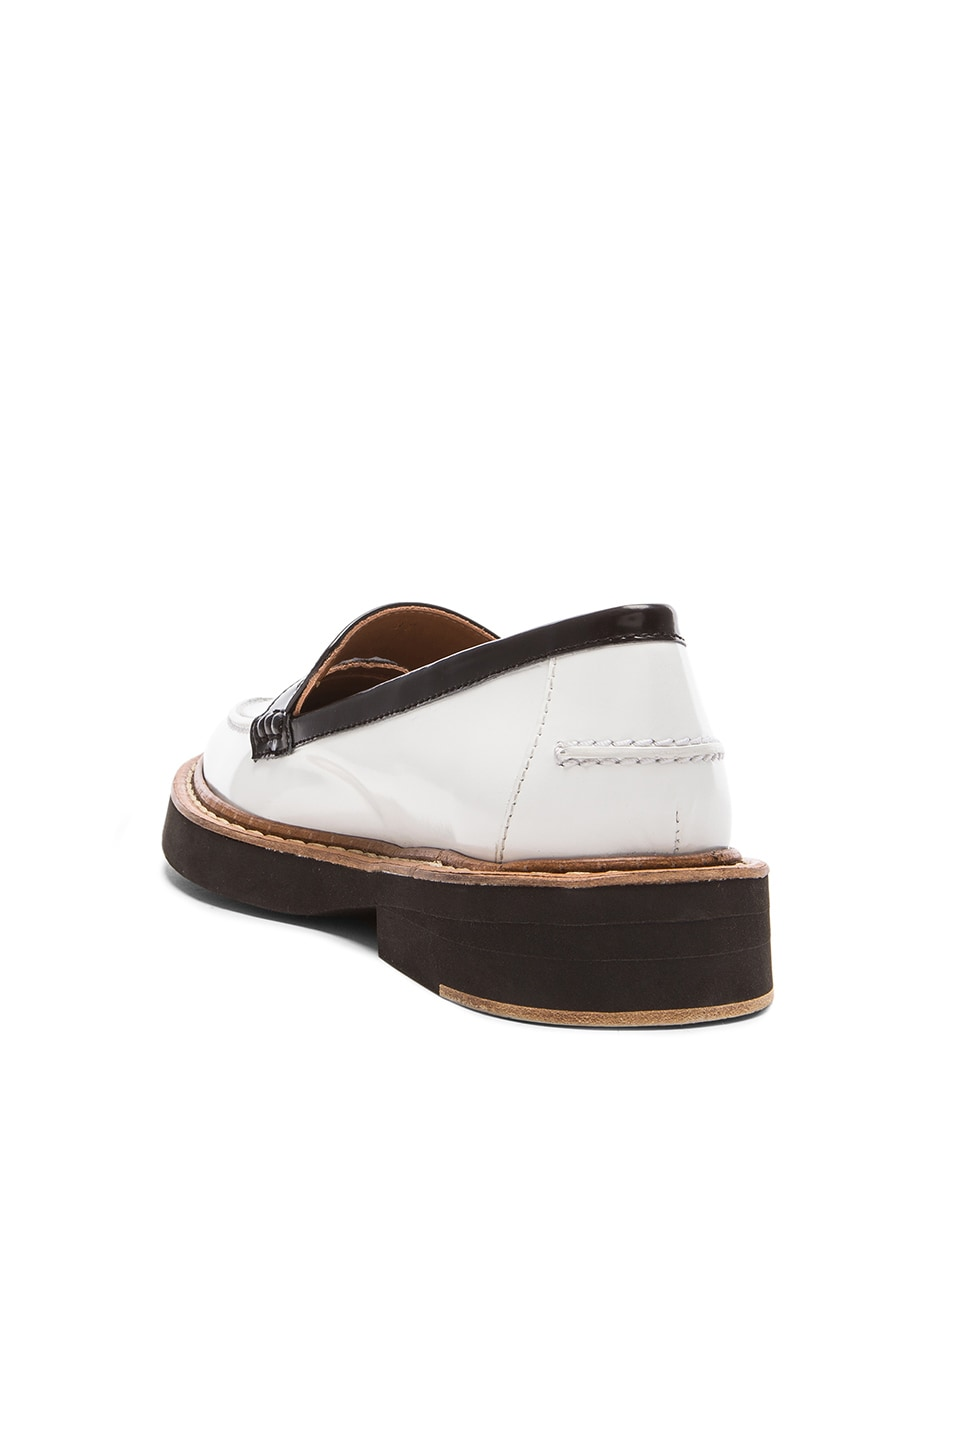 Image 3 of Flamingos Walton Leather Loafers in Black, Silver, & White